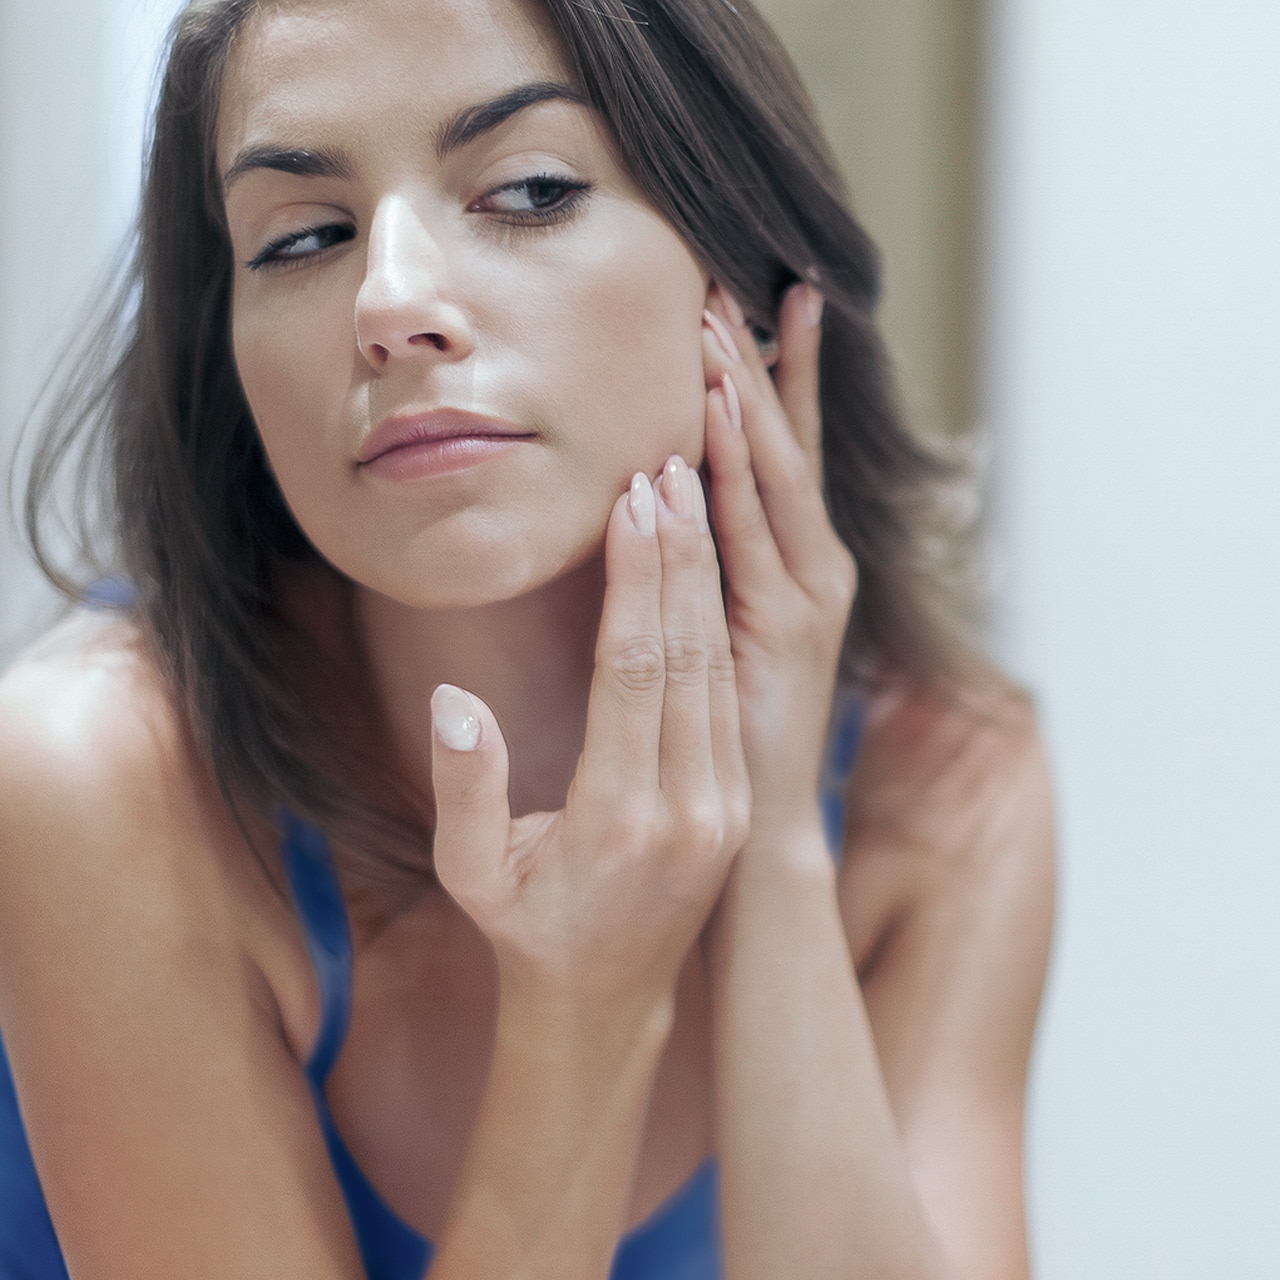 How to Remove Acne Scars and Help Skin Heal | Vaseline®